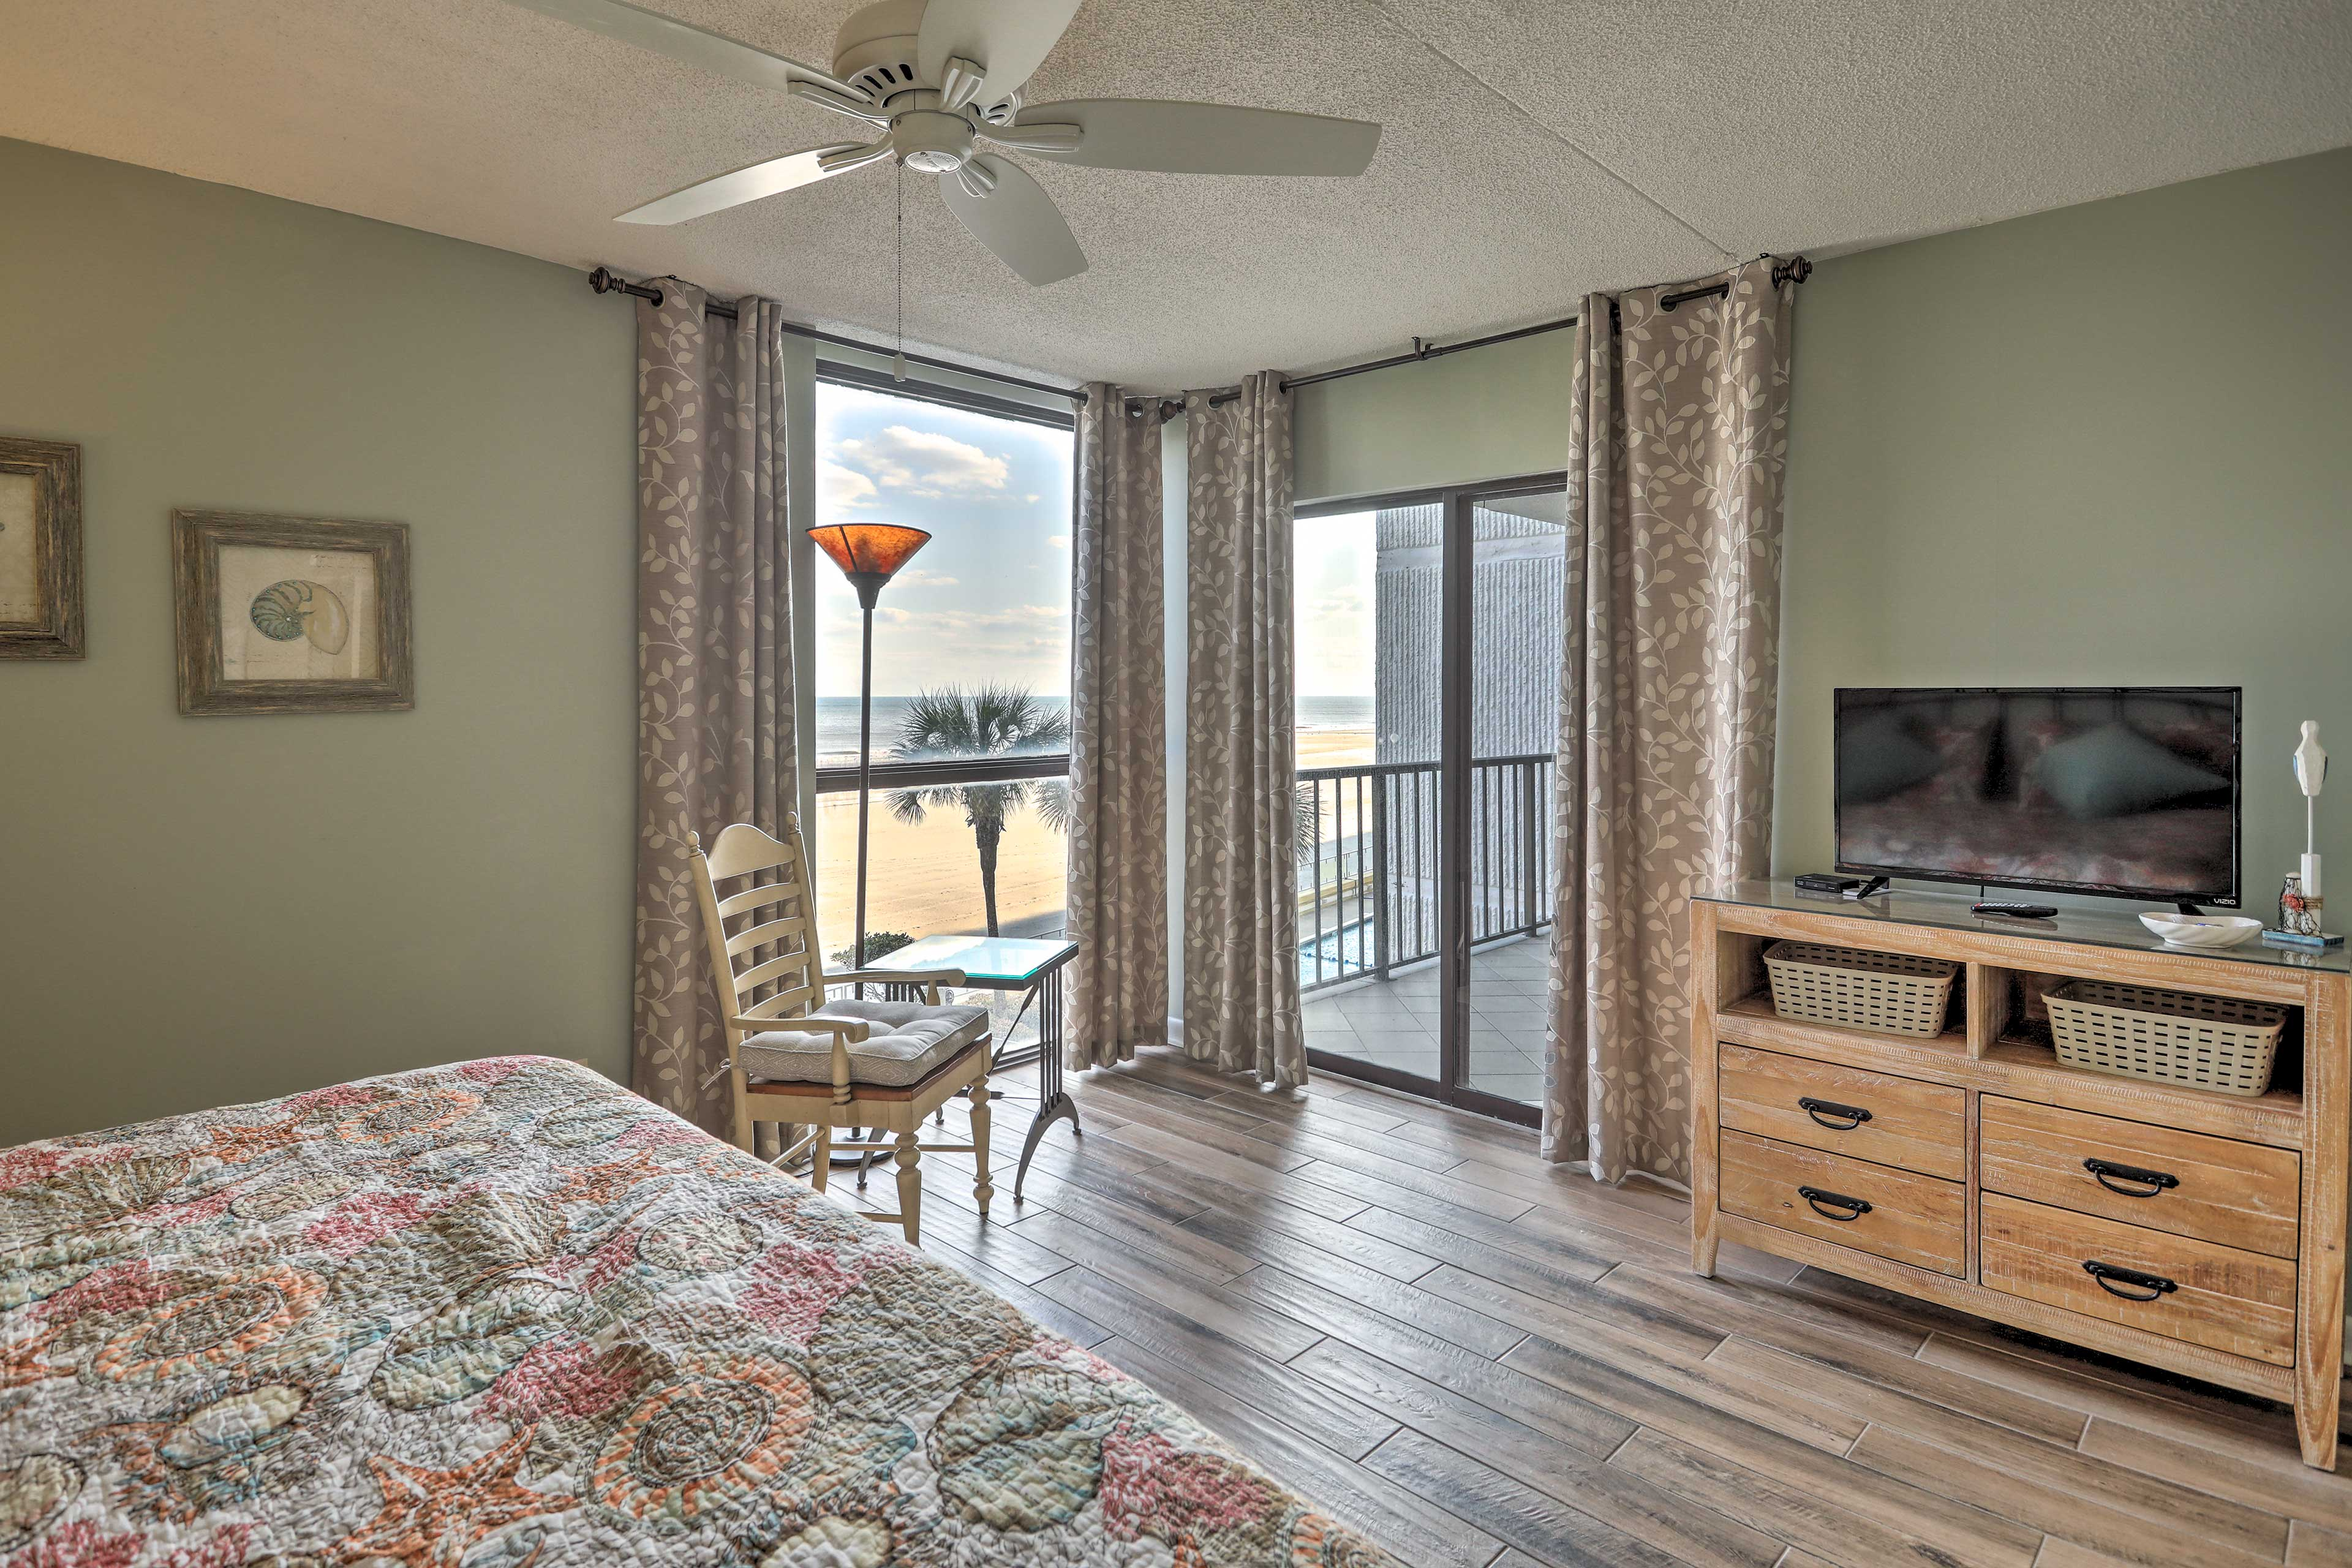 Catch the beachfront view from the comfort of bed.